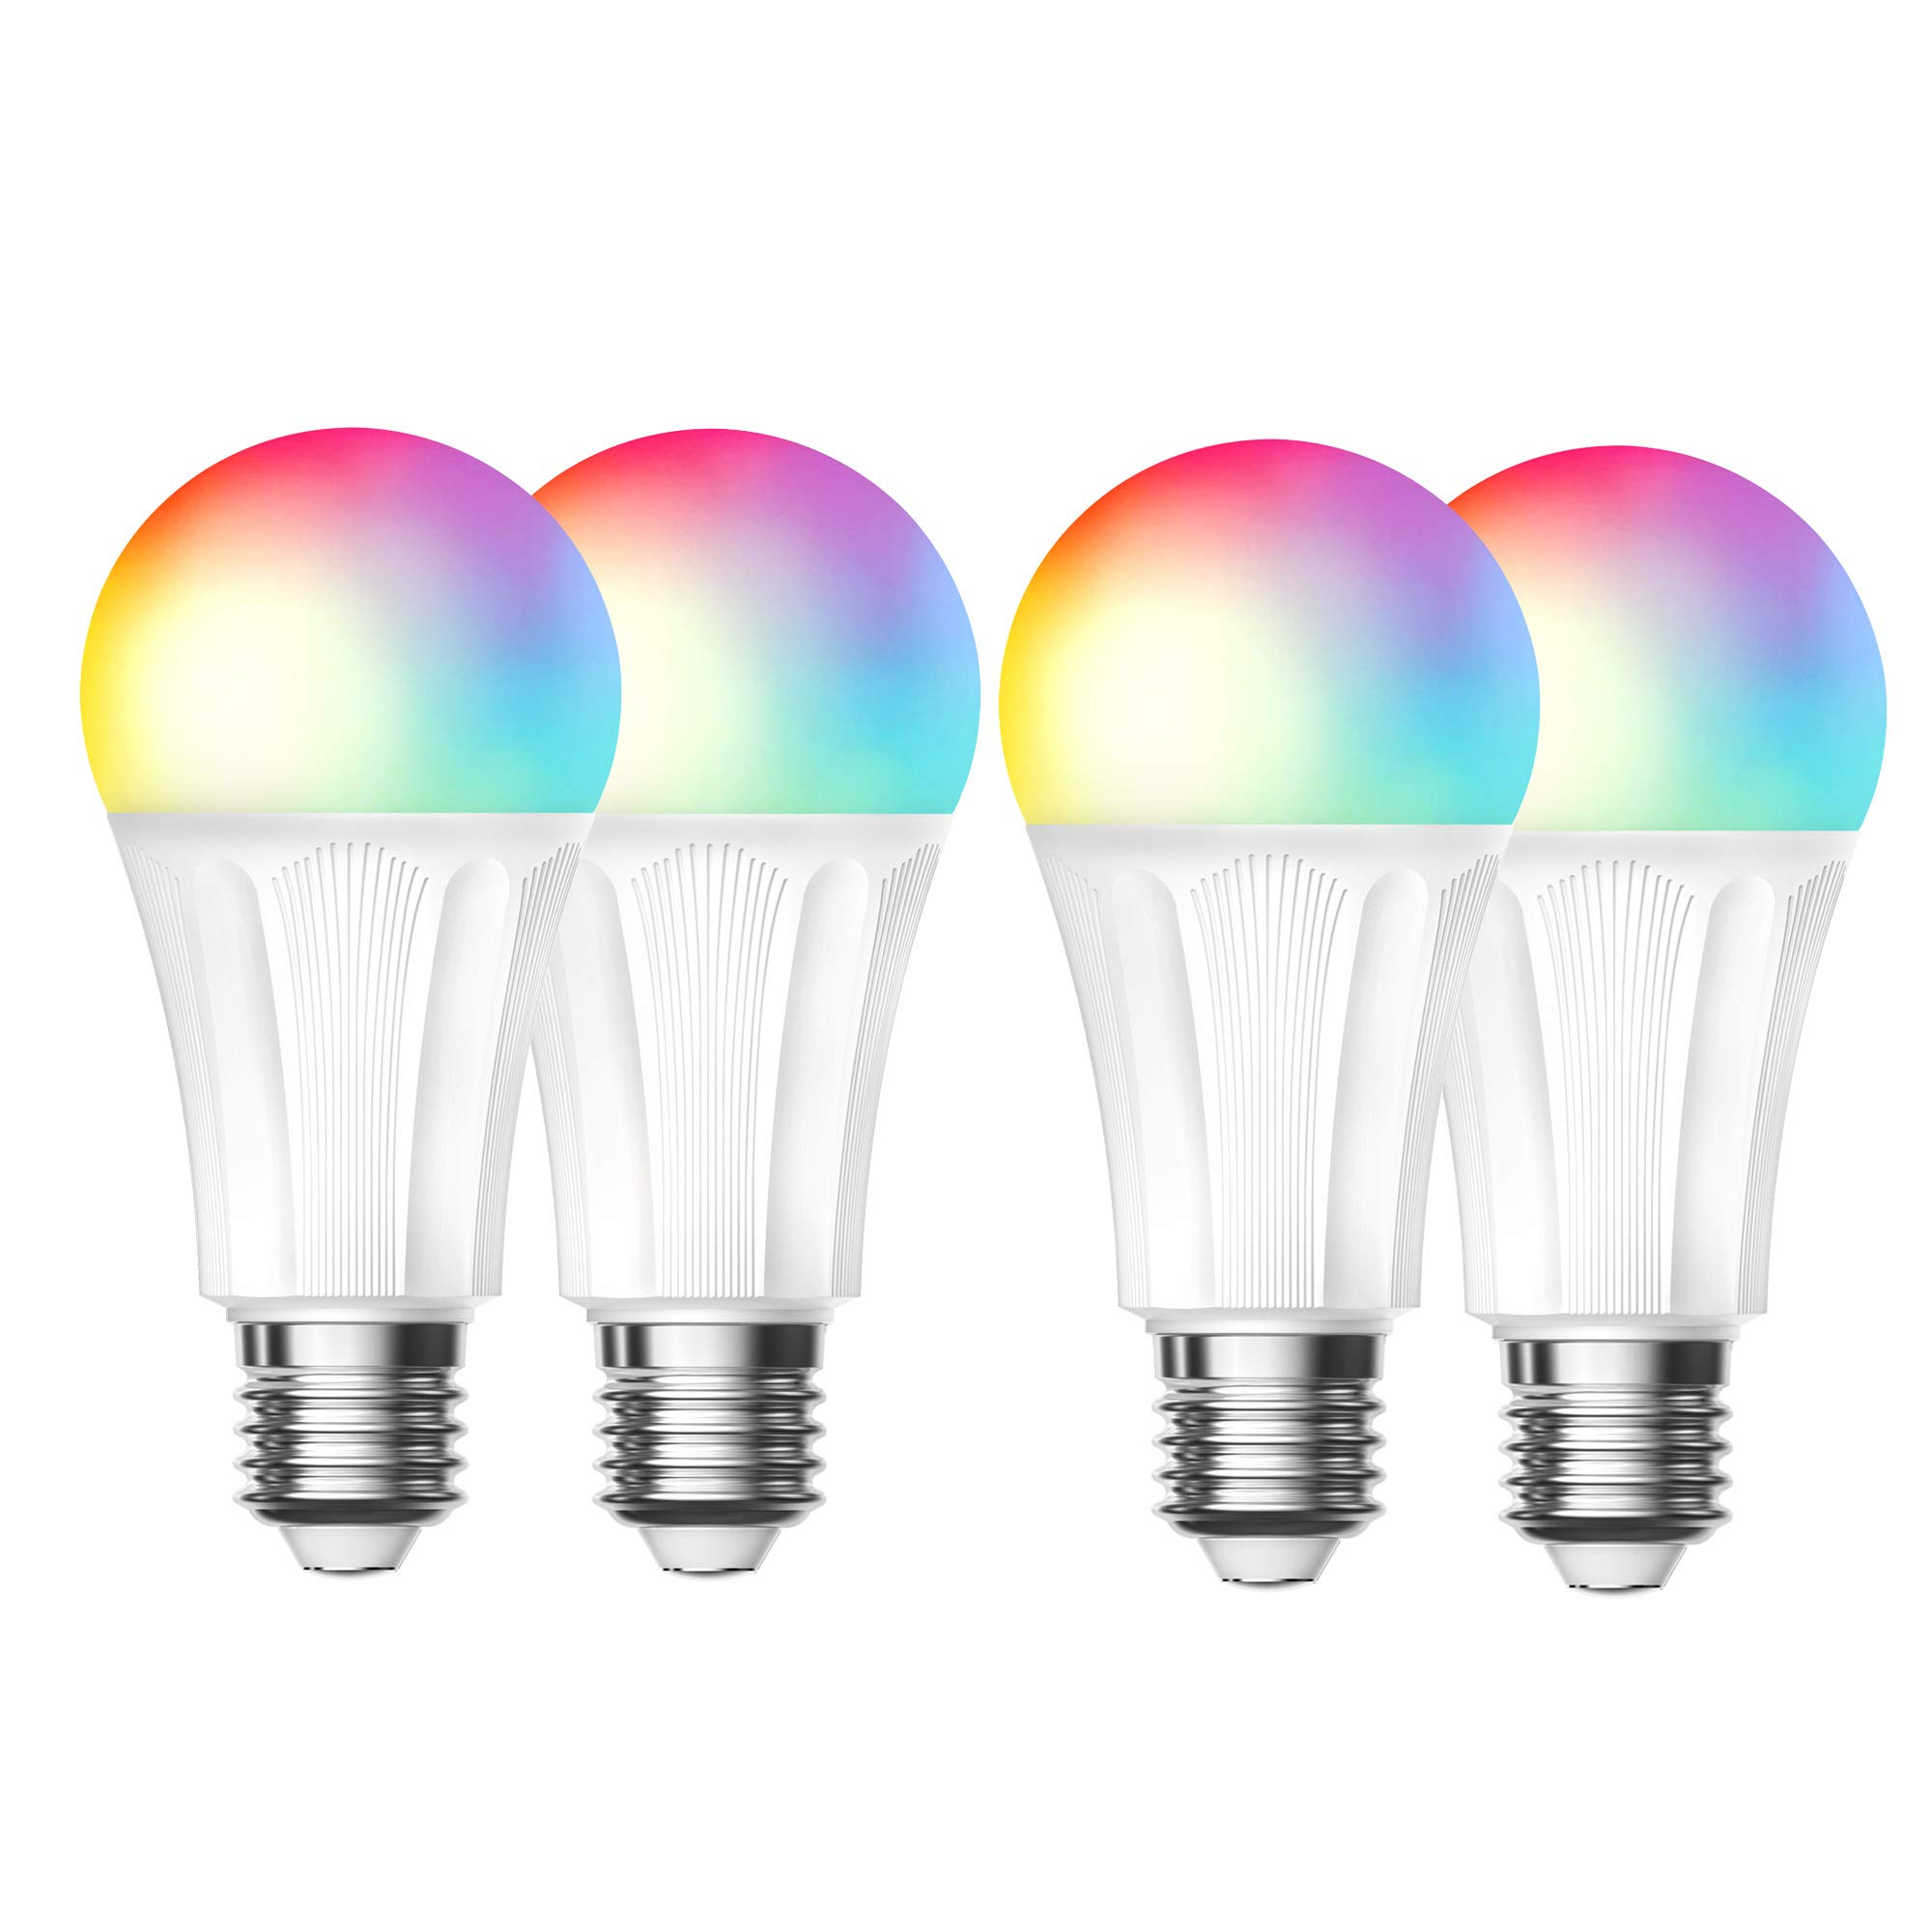 Smart LED Bulb,Wi-Fi Light Bulb Compatible with Alexa Google Home IFTTT, Dimmable 60W Equivalent Lamp Bulb RGBW,810 Lumens by Esicoo 4 Pack 9W